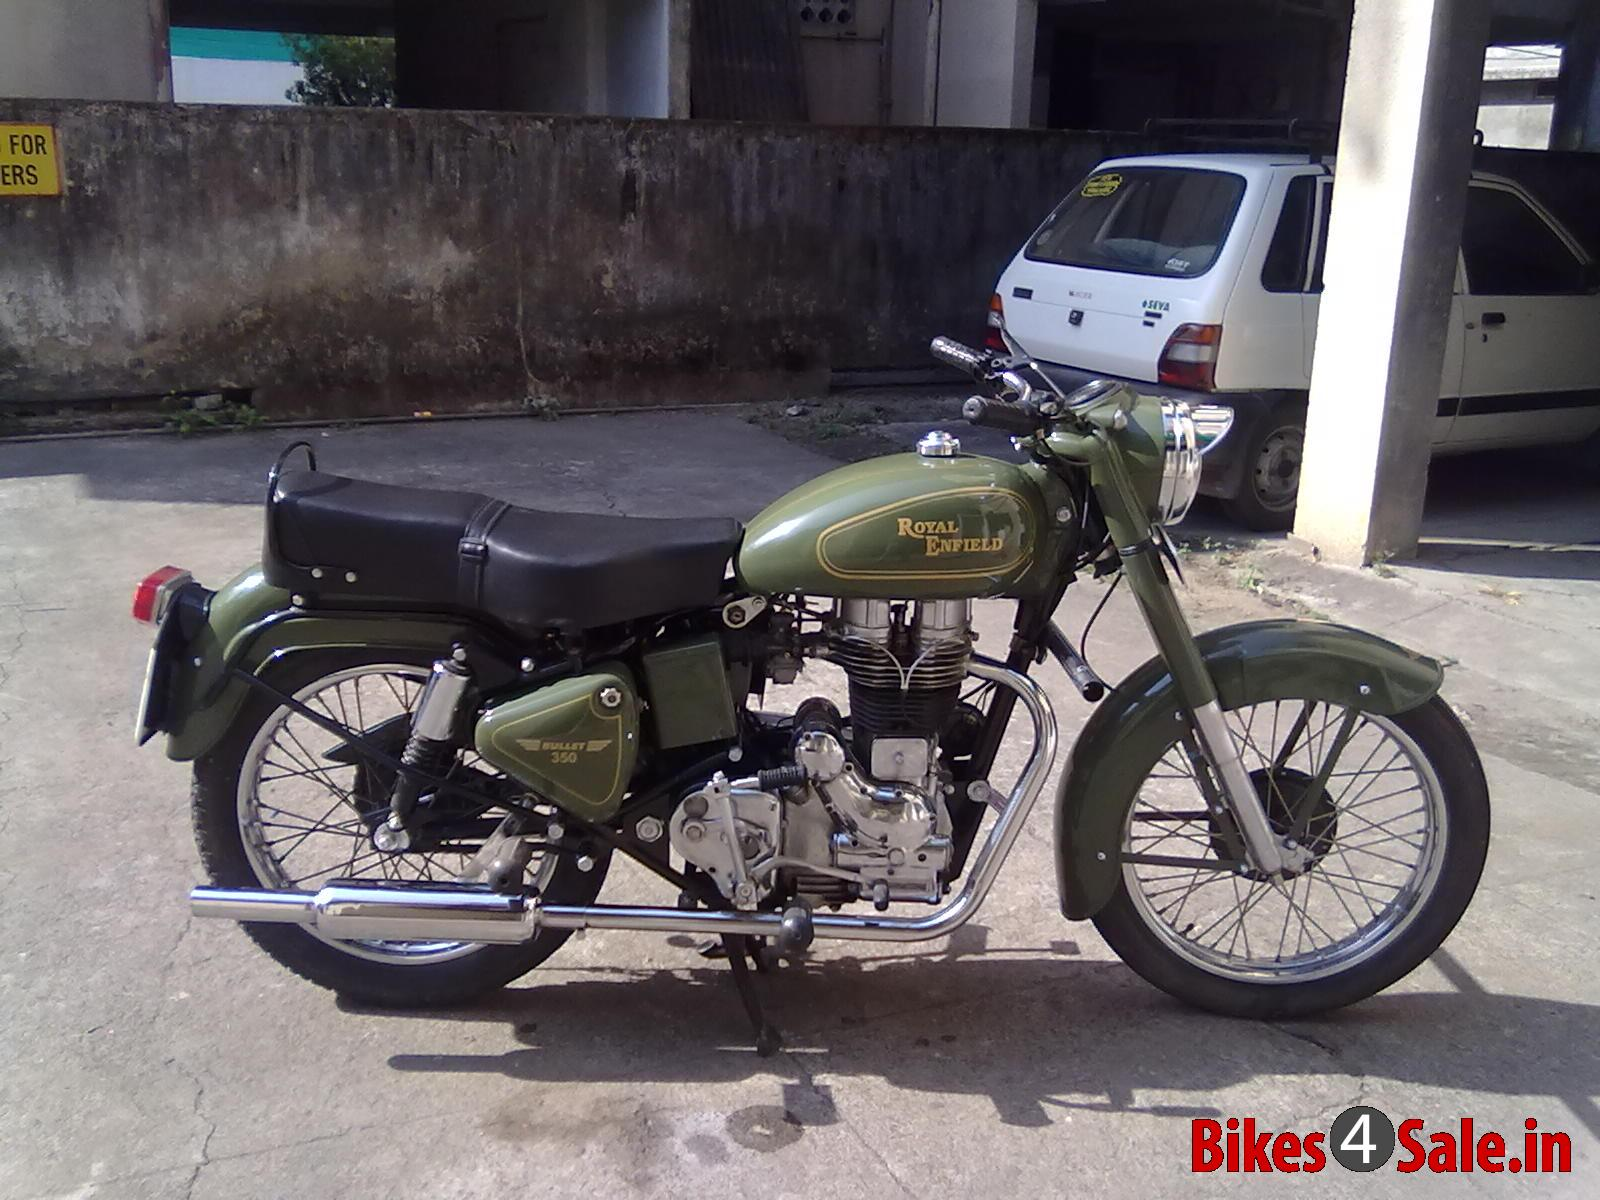 Royal Enfield Bullet 350 Army 2002 images #123592